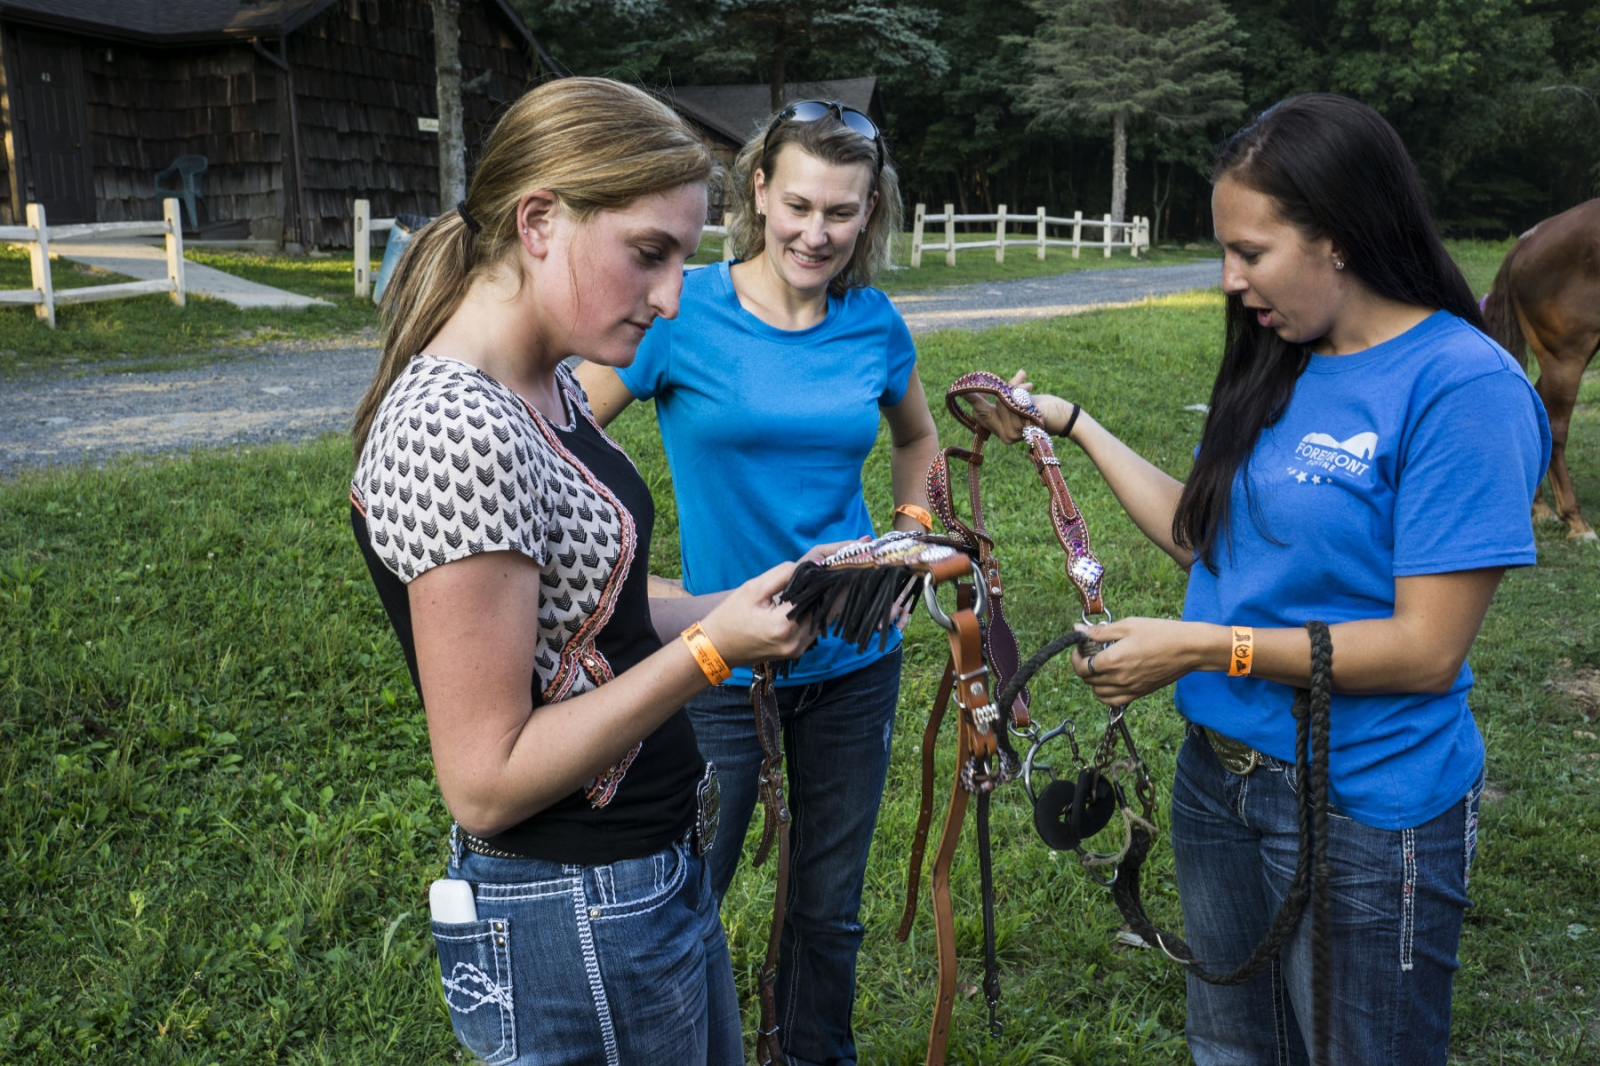 Taylor Young looking at decorated leather harnesses for horses, with friends from Cowtown Rodeo, at Malibu Rodeo in Milford, Pennsylvania. (Kevin C. Downs/Agence Cosmos)